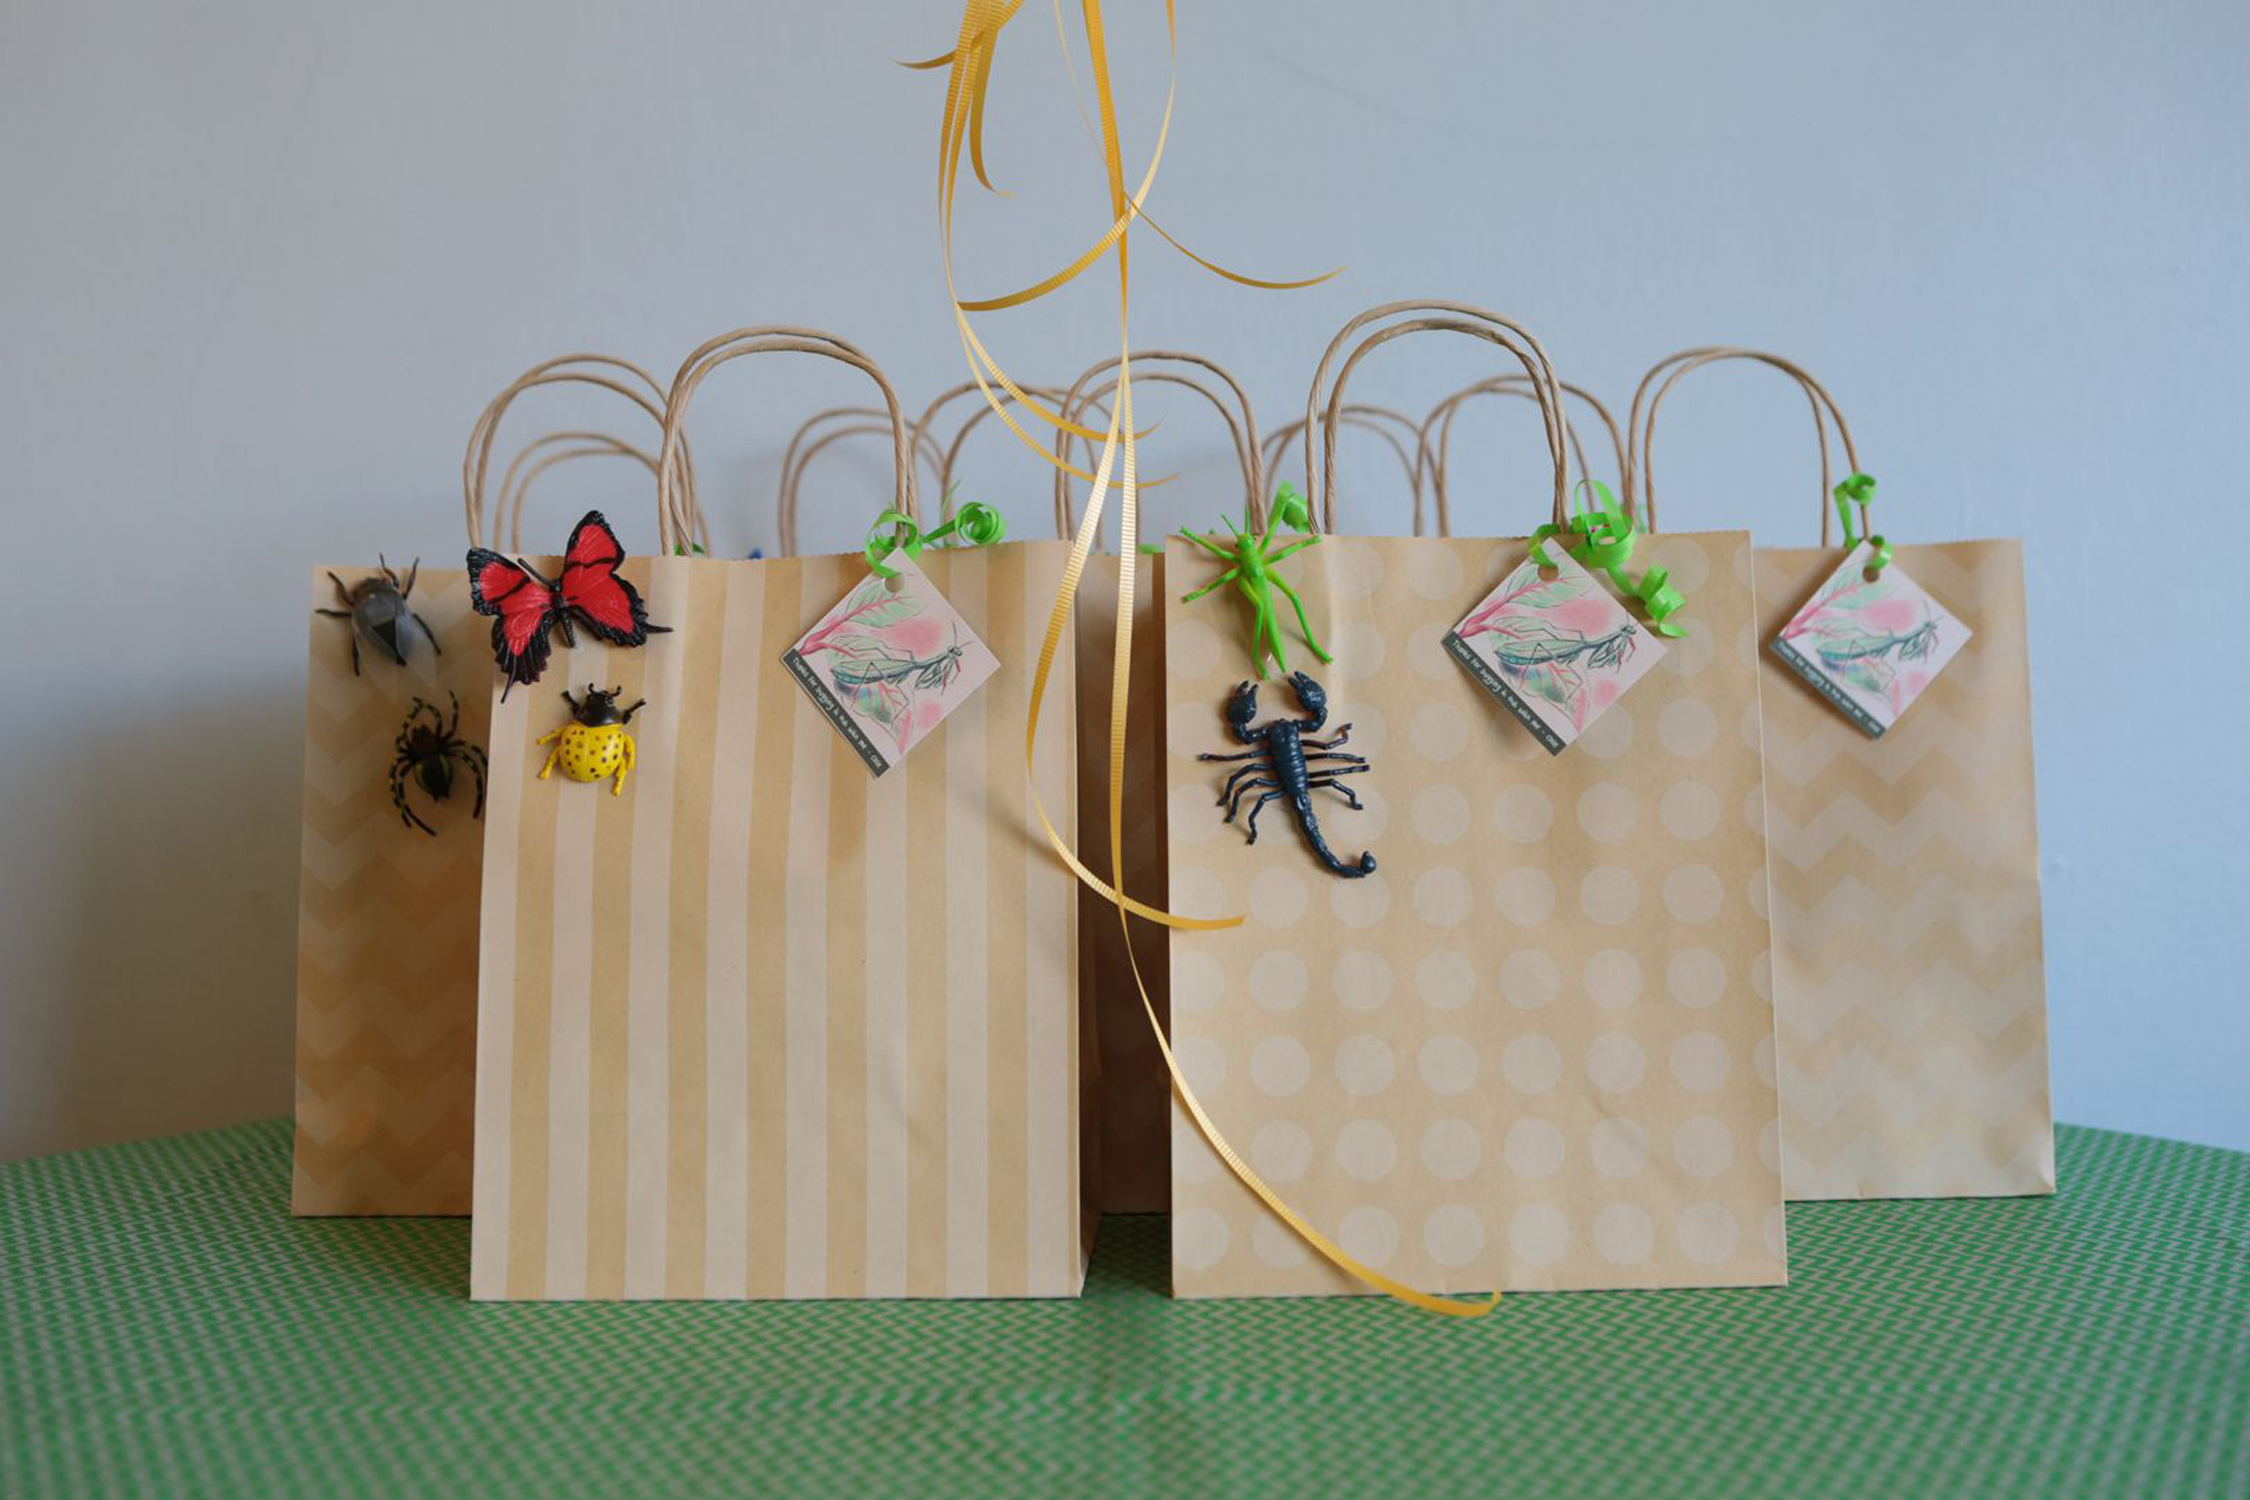 tarynco-events-bug-themed-kids-birthday-party-favors.jpg